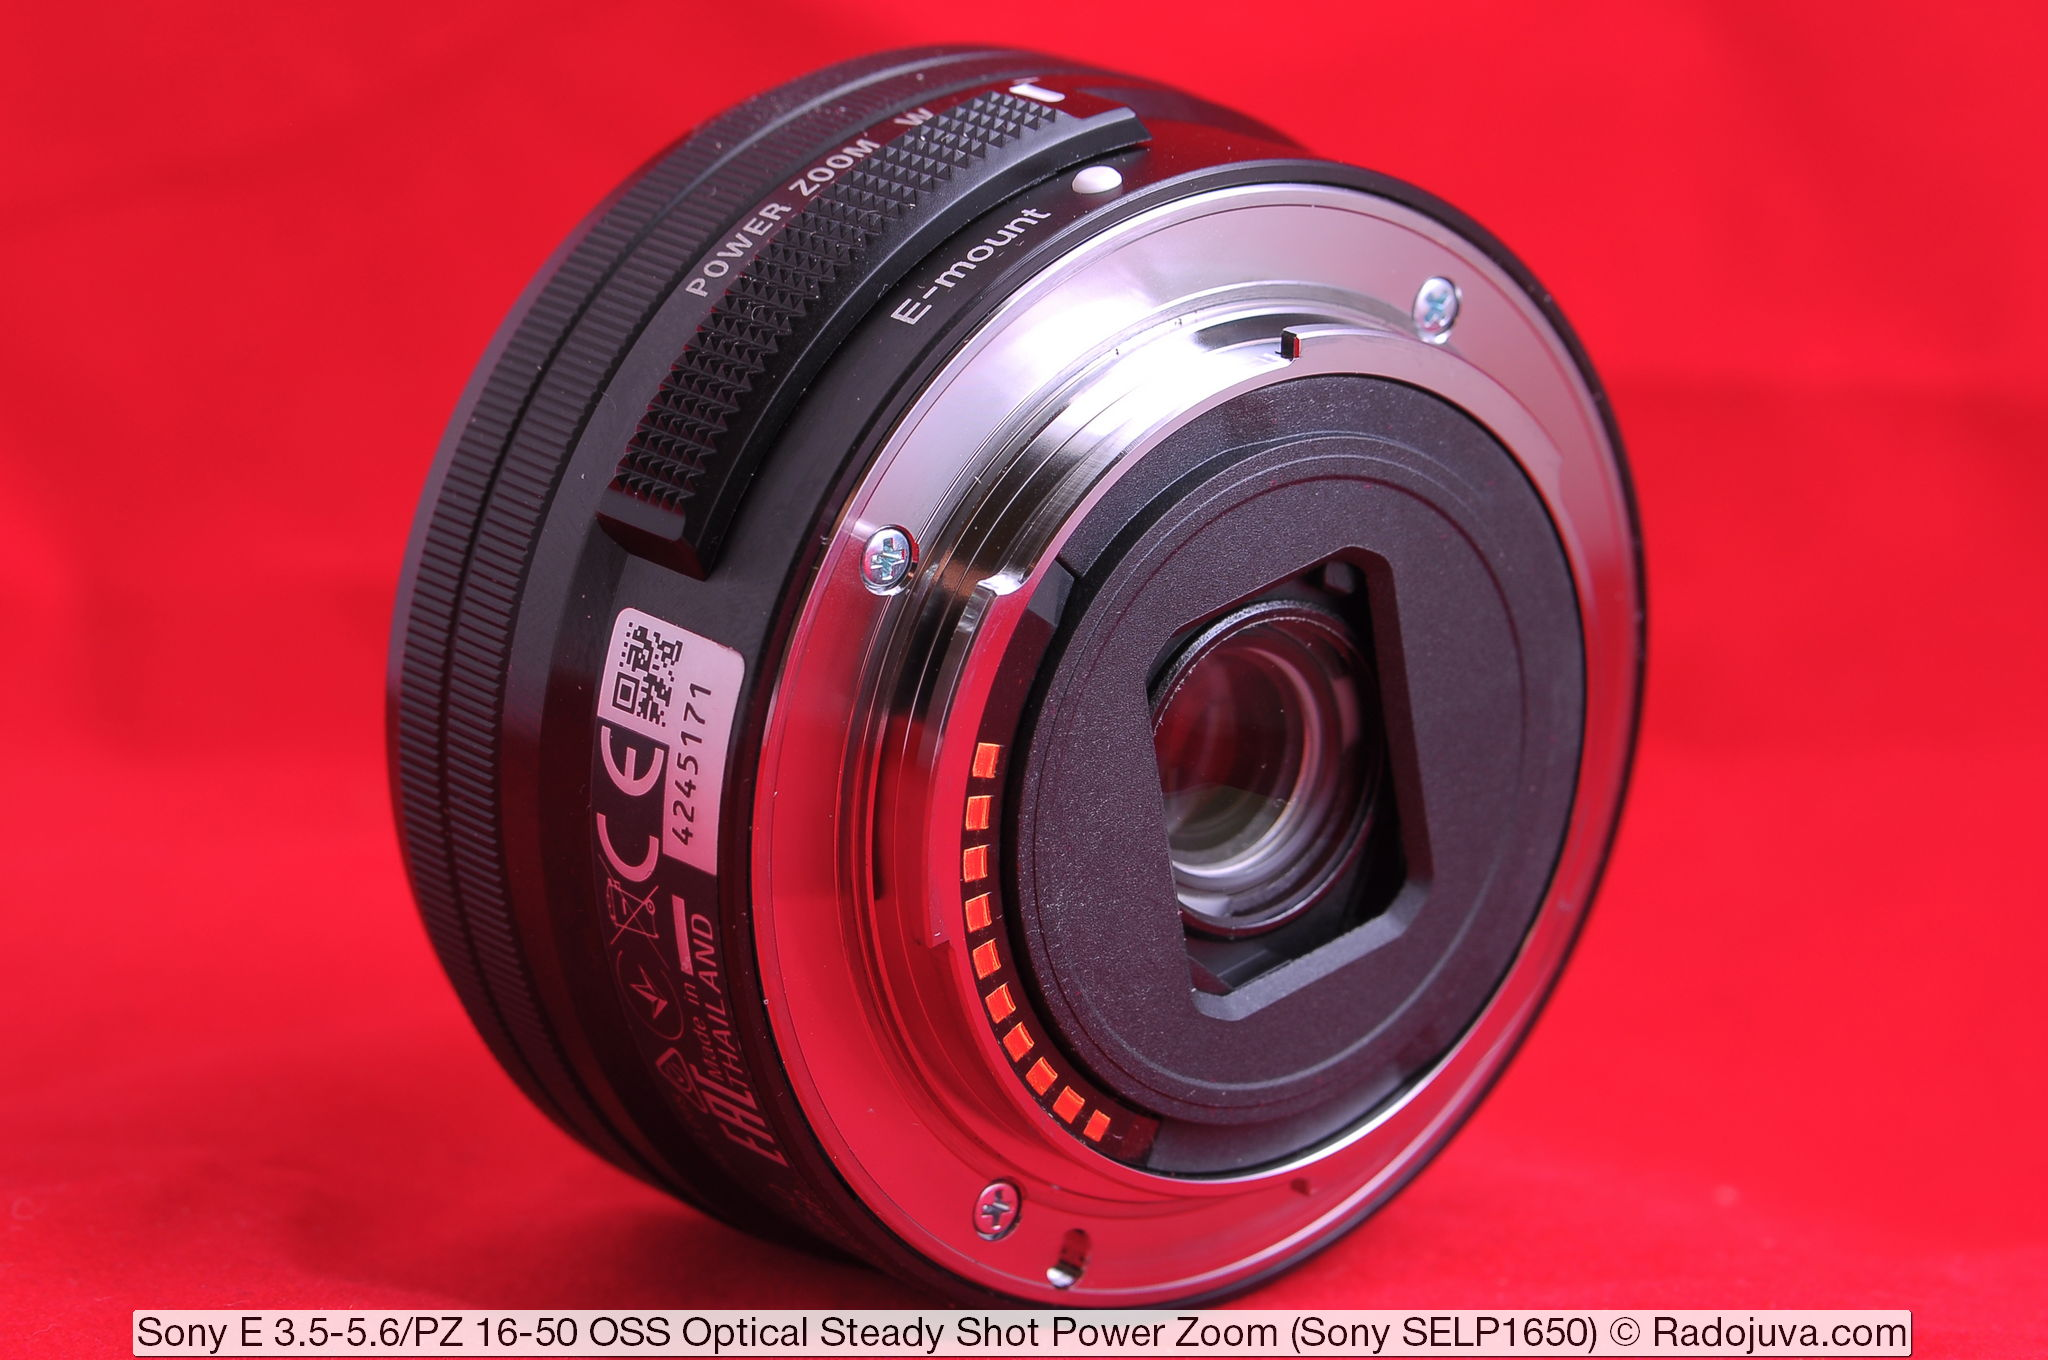 Sony E 3.5-5.6/PZ 16-50 OSS Optical Steady Shot Power Zoom (Sony SELP1650)